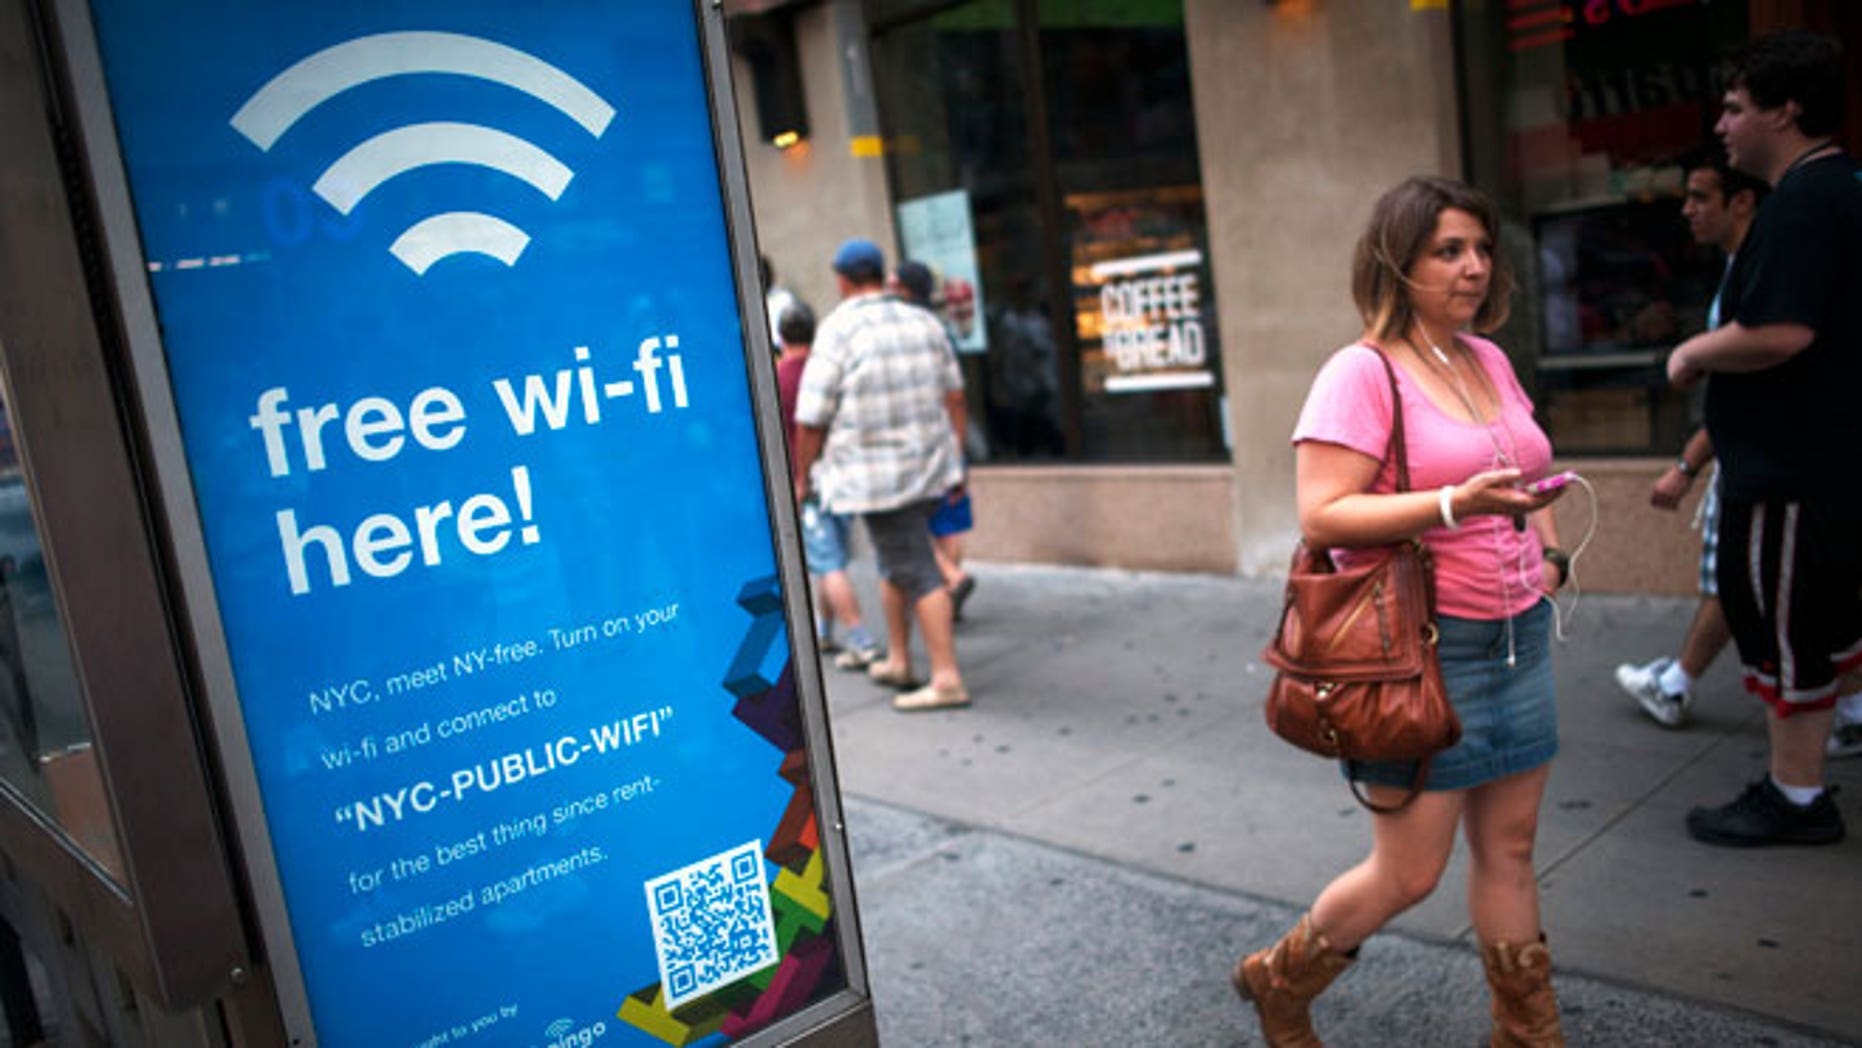 5 easy tricks to boost your home Wi-Fi | Fox News